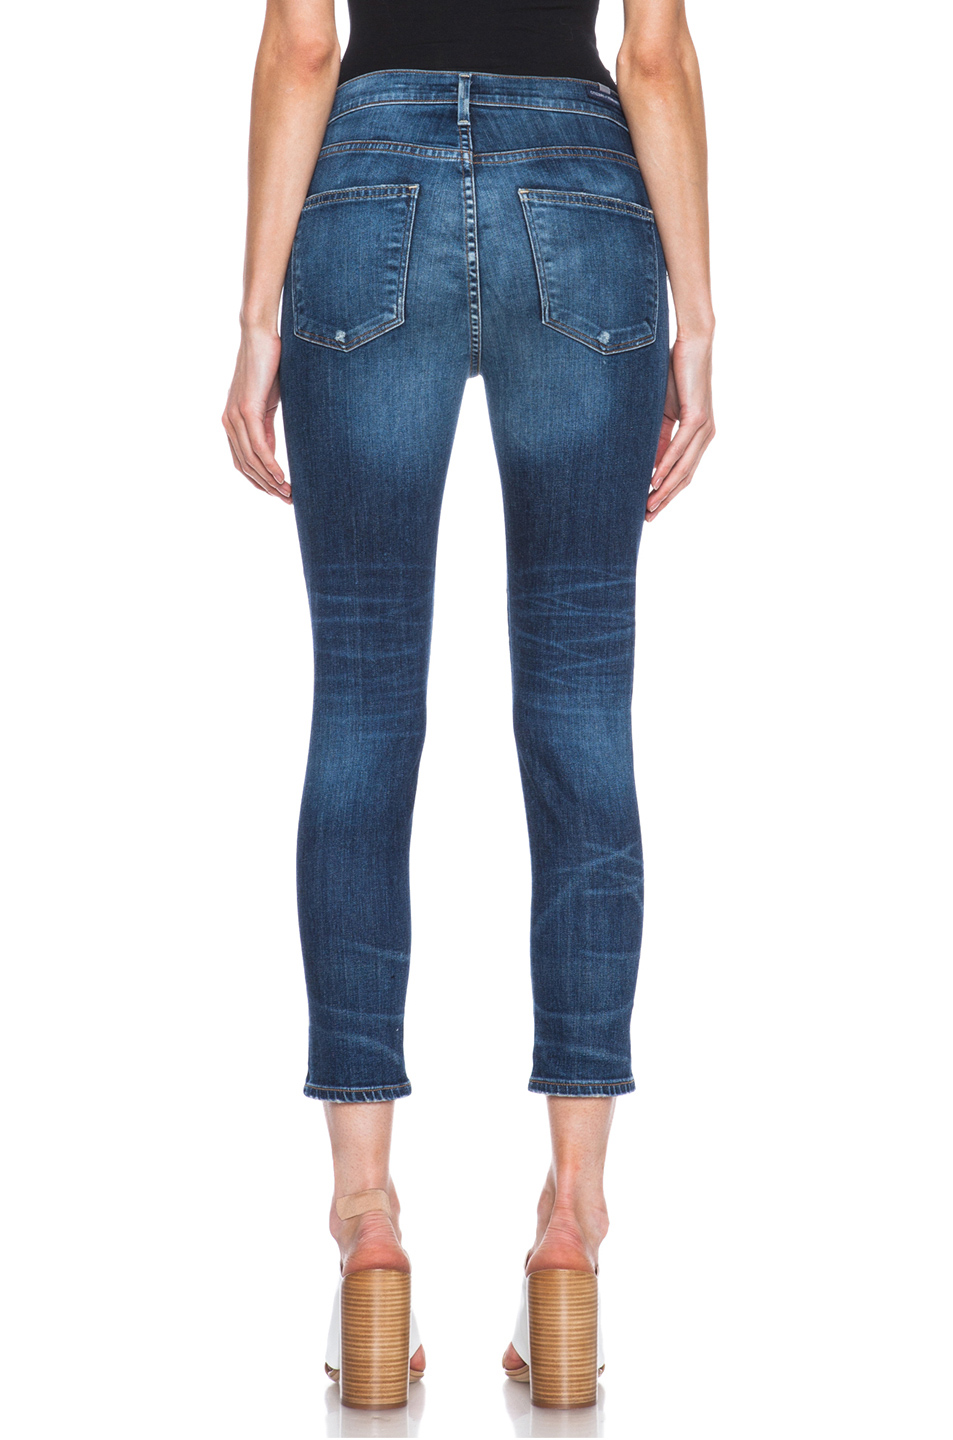 Citizens of Humanity|Rocket High Rise Crop Jean in Weekender